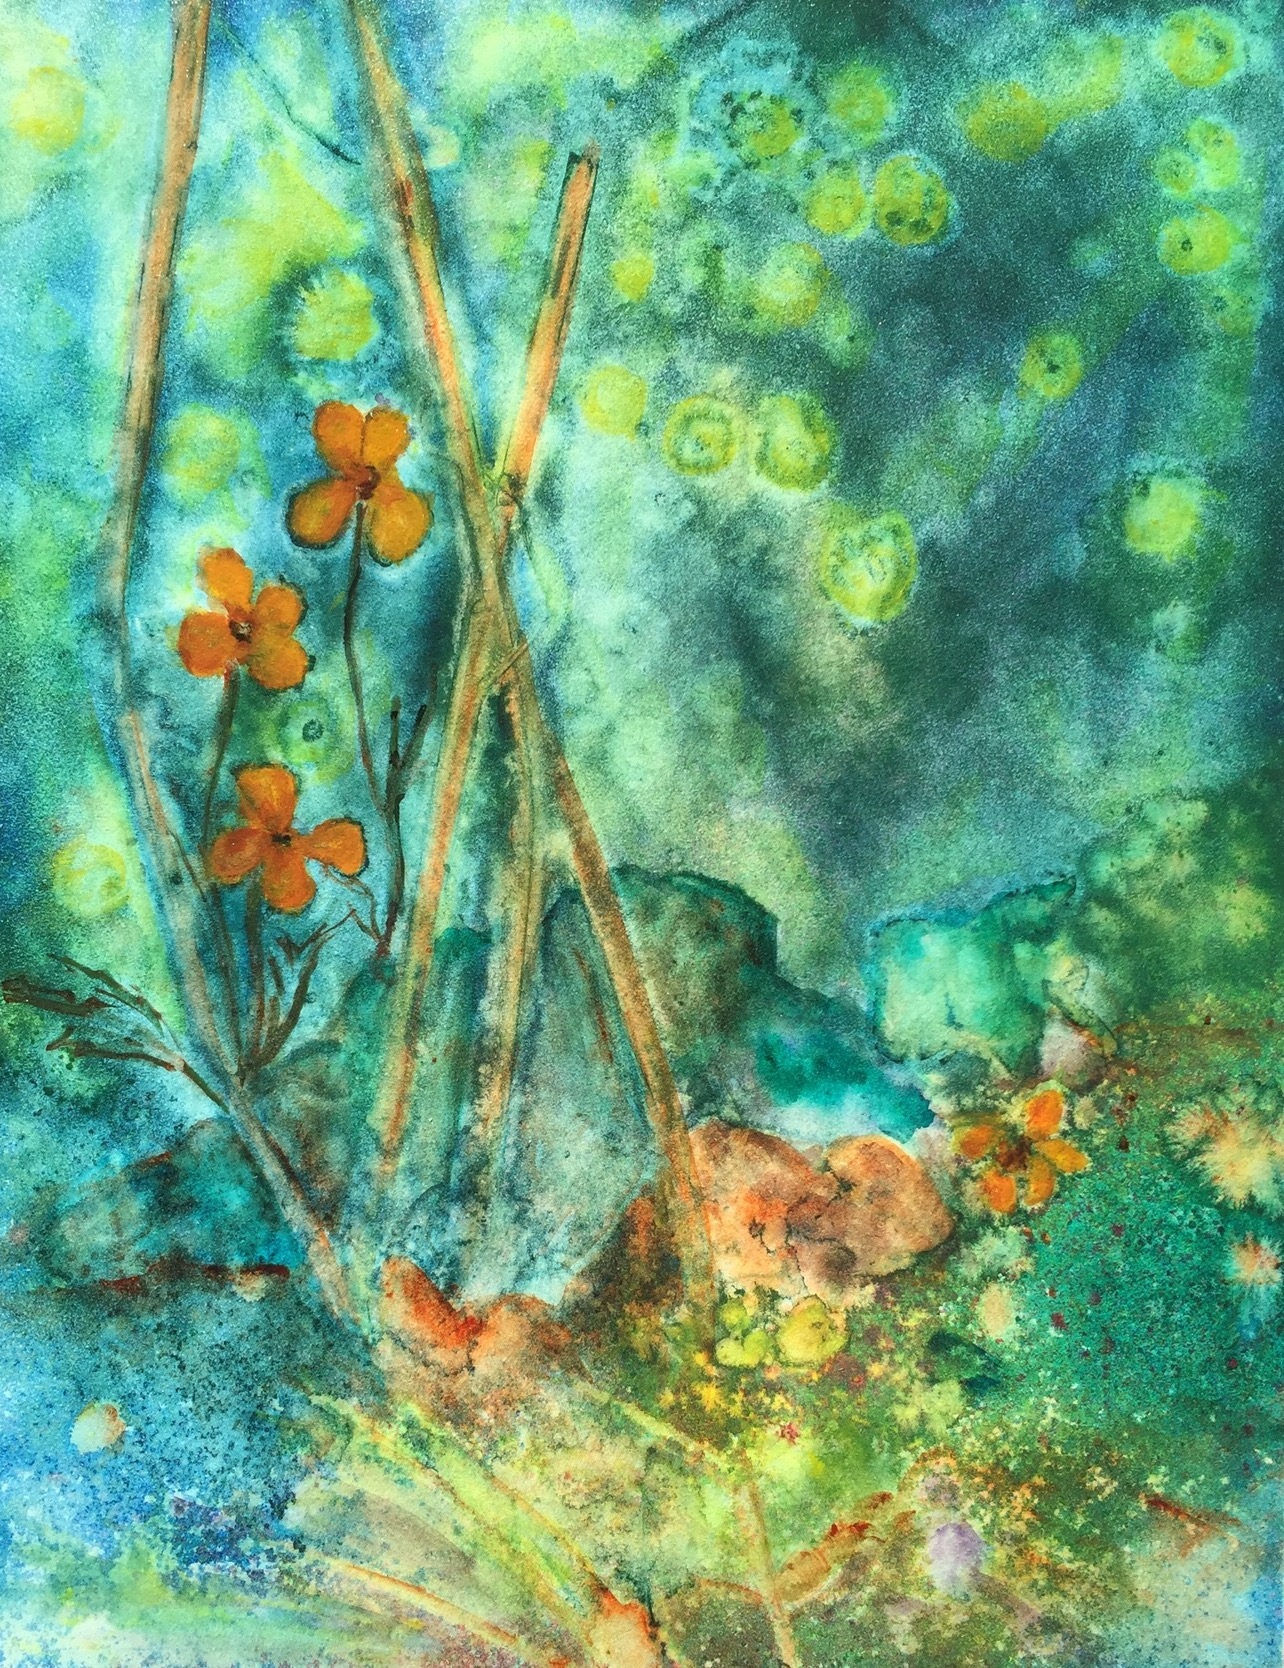 Ruth McCauley, Remembering Fireflies, watercolor, ink, acrylic